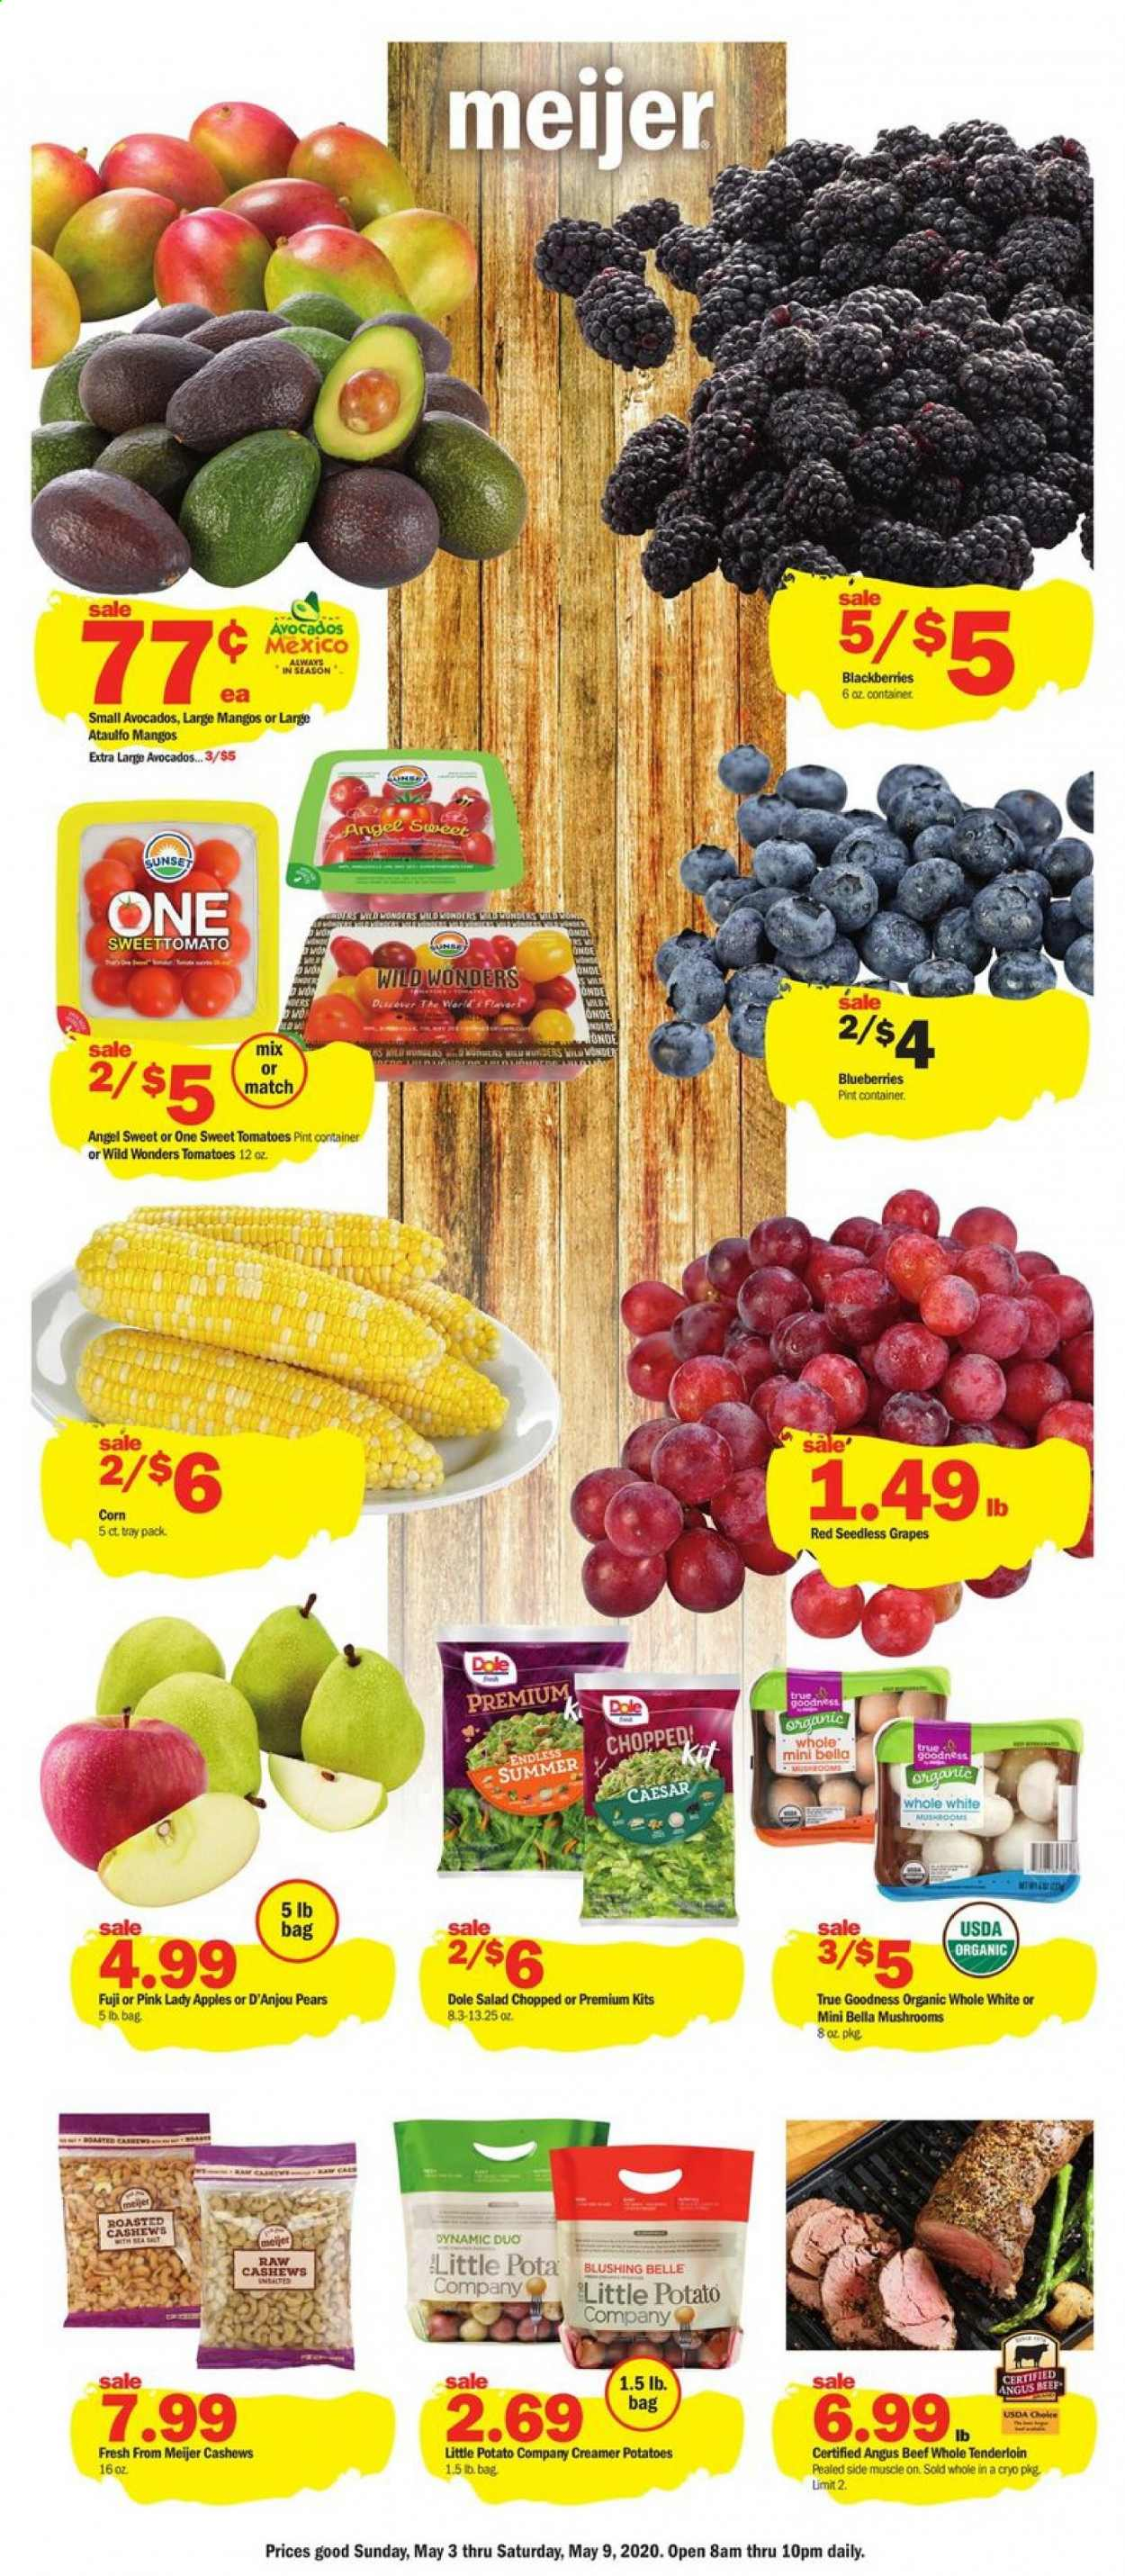 Meijer Flyer - 05.03.2020 - 05.09.2020 - Sales products - mushroom, blackberries, blueberries, seedless grapes, Dole, apples, pears, salad, corn, mango, cashews, beef meat, Bella, tray. Page 1.